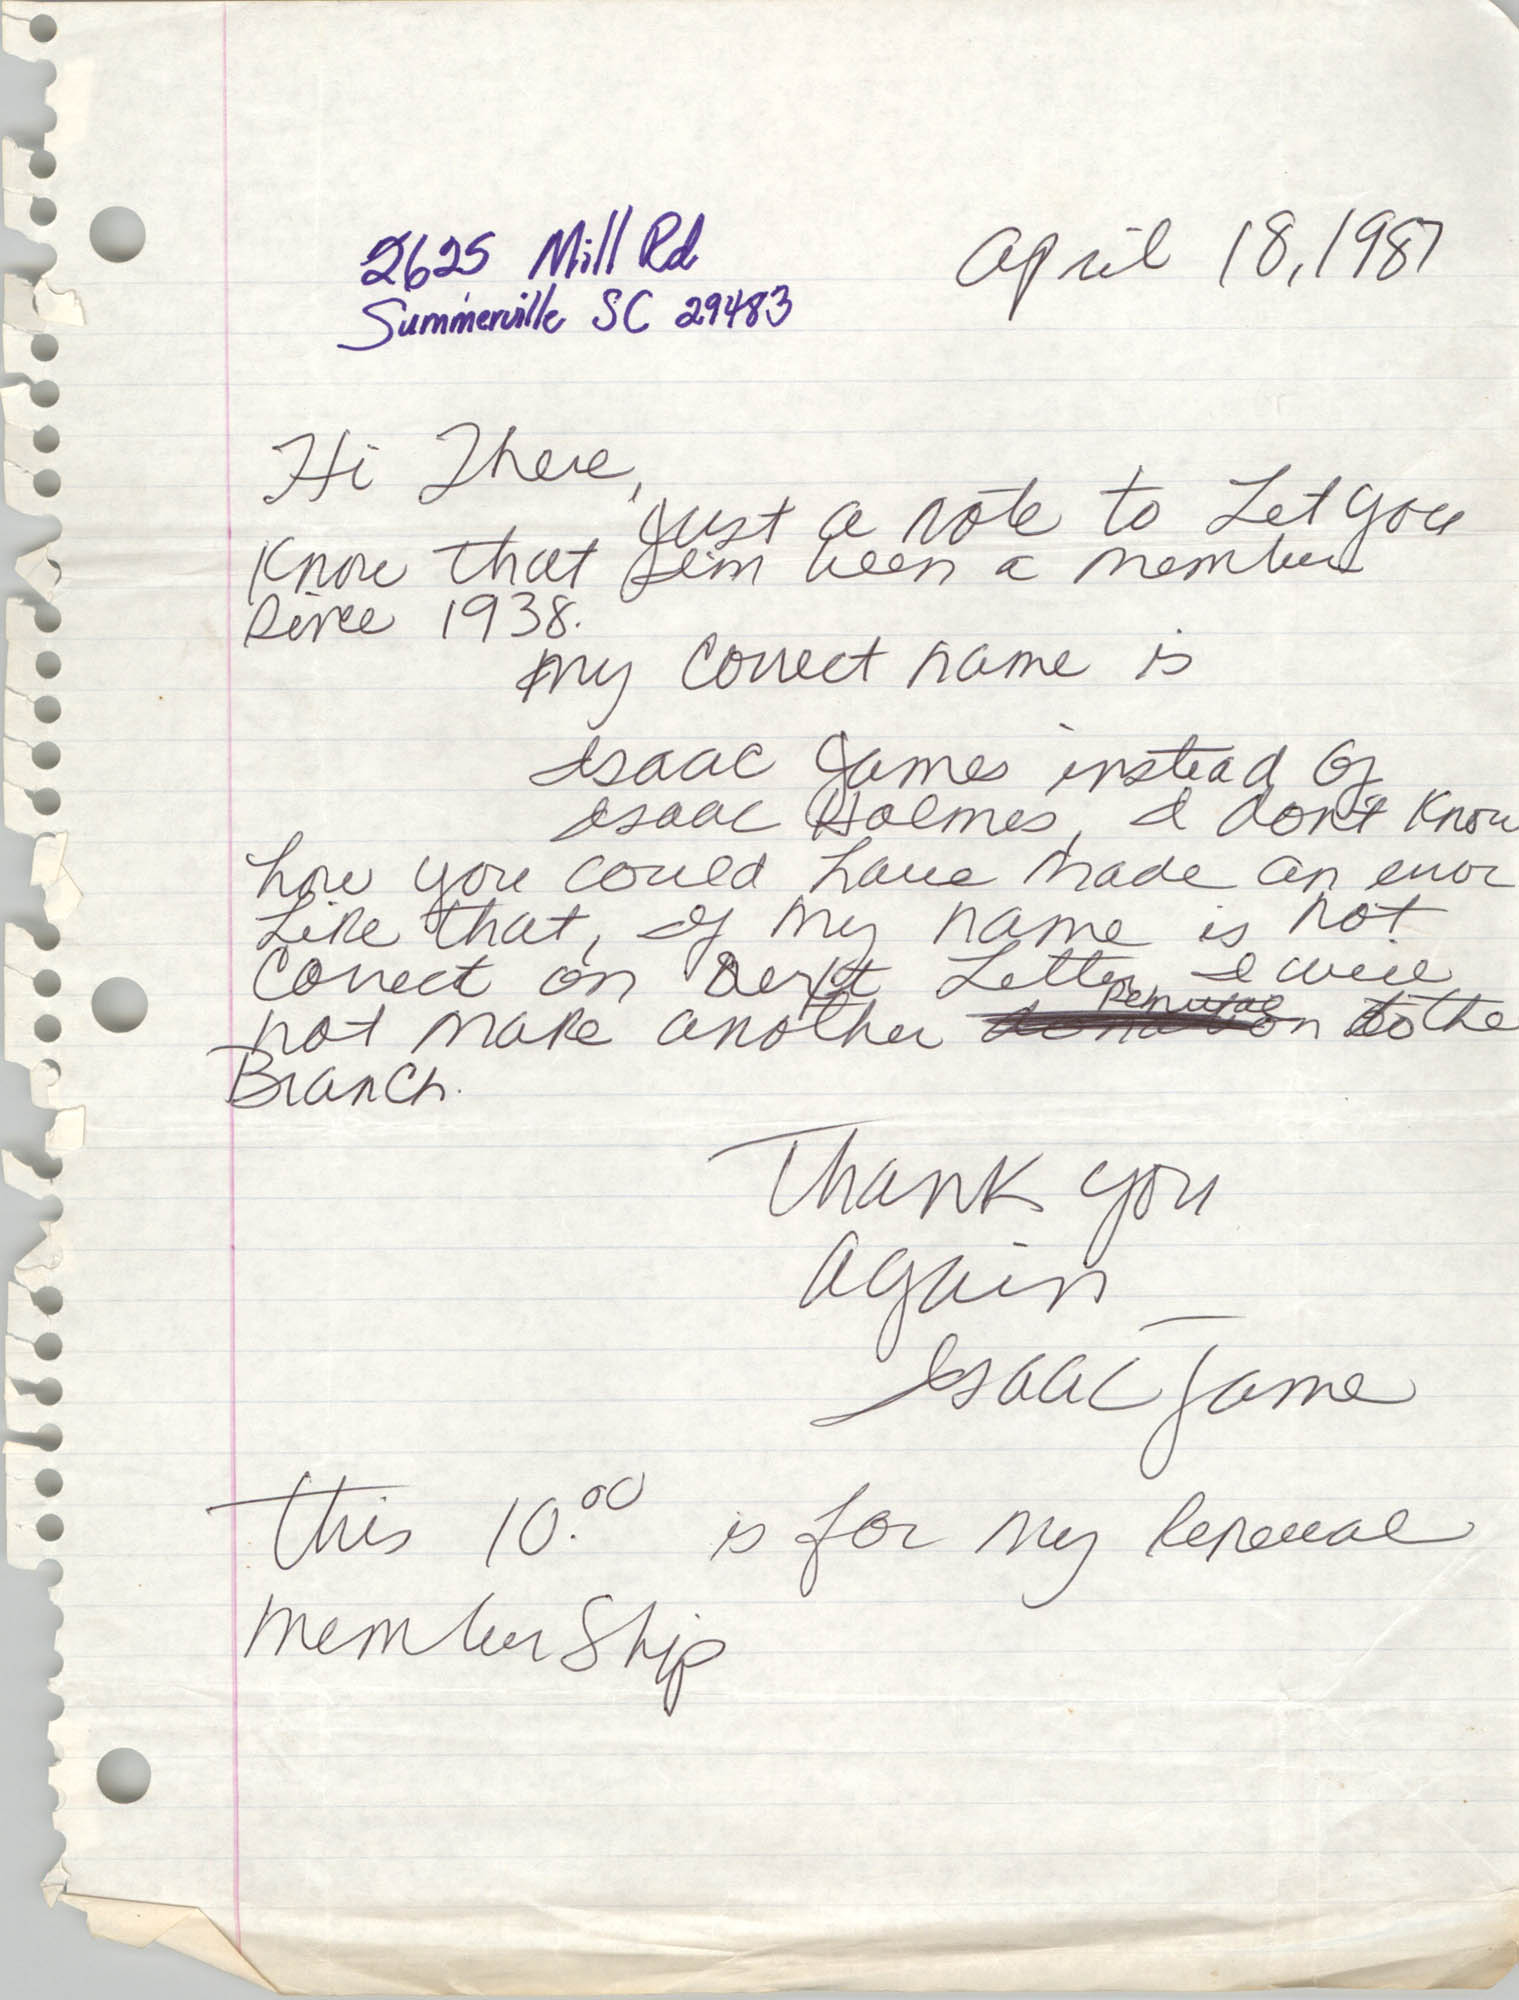 Membership Renewal Letter, Isaac James, April 18, 1987